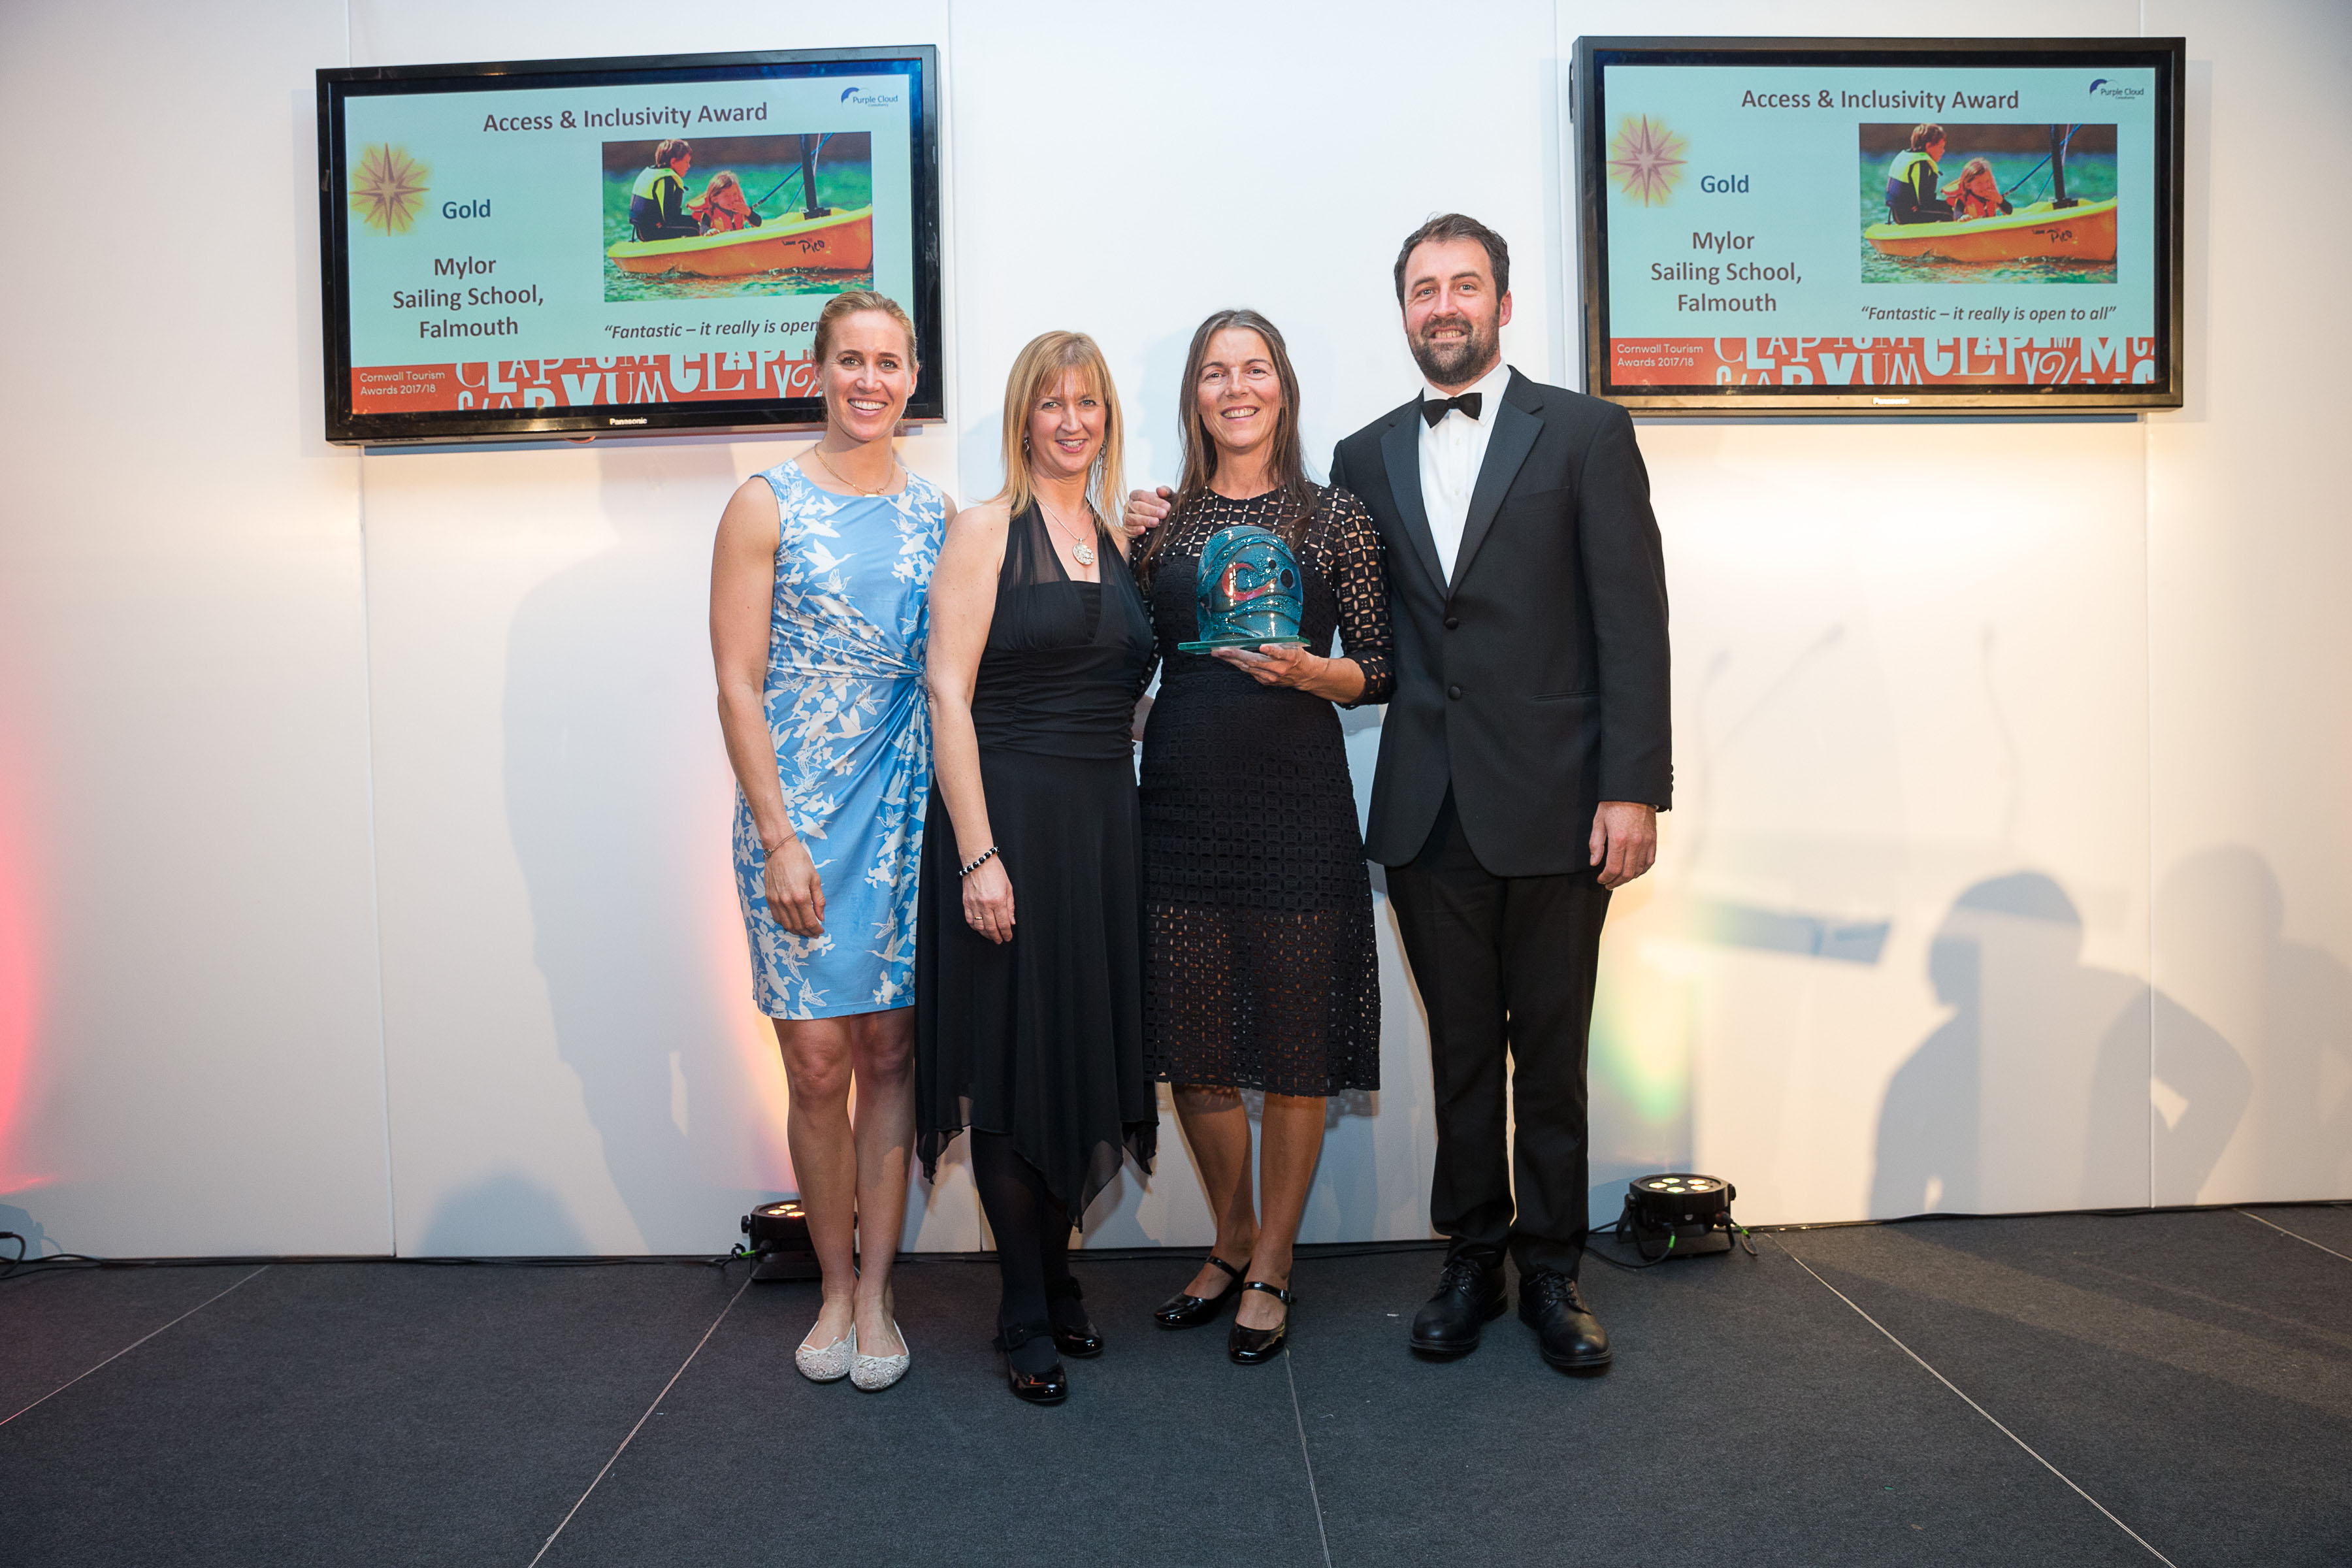 Helen Glover with owners of Mylor Sailing school collecting their GOLD award at the Cornwall Tourism Awards in November 2017